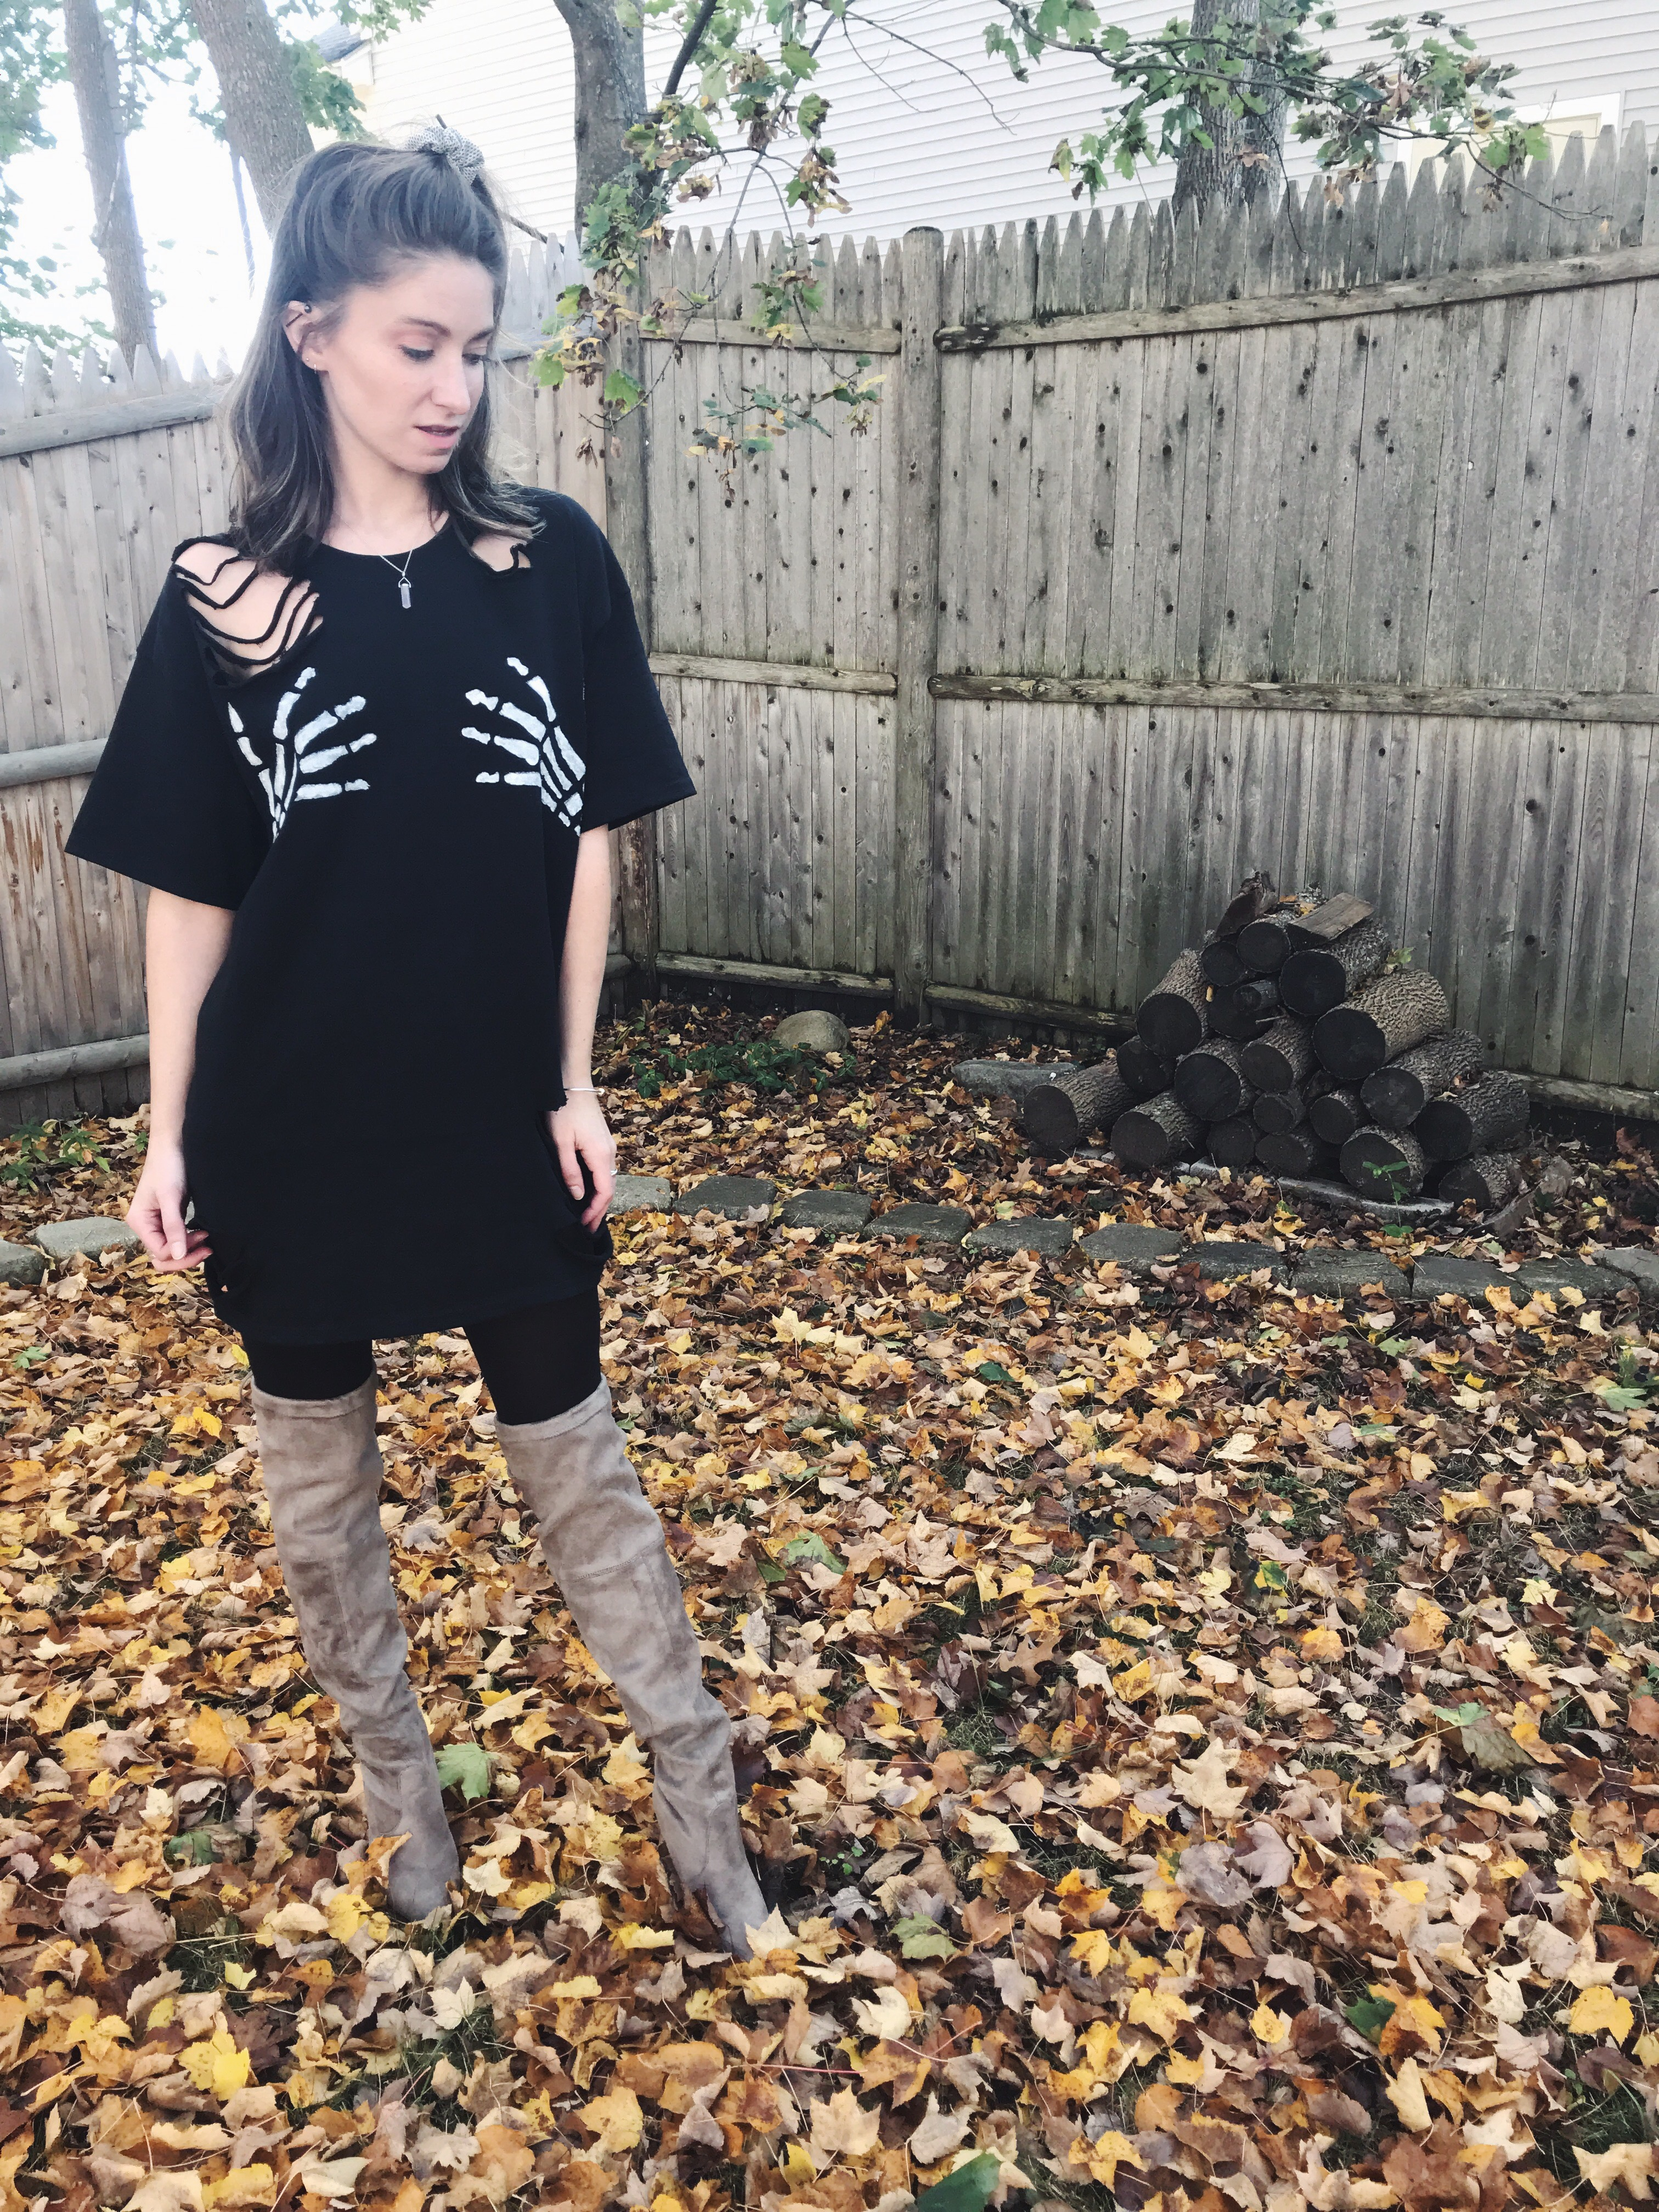 OOTD skeleton hands shirt